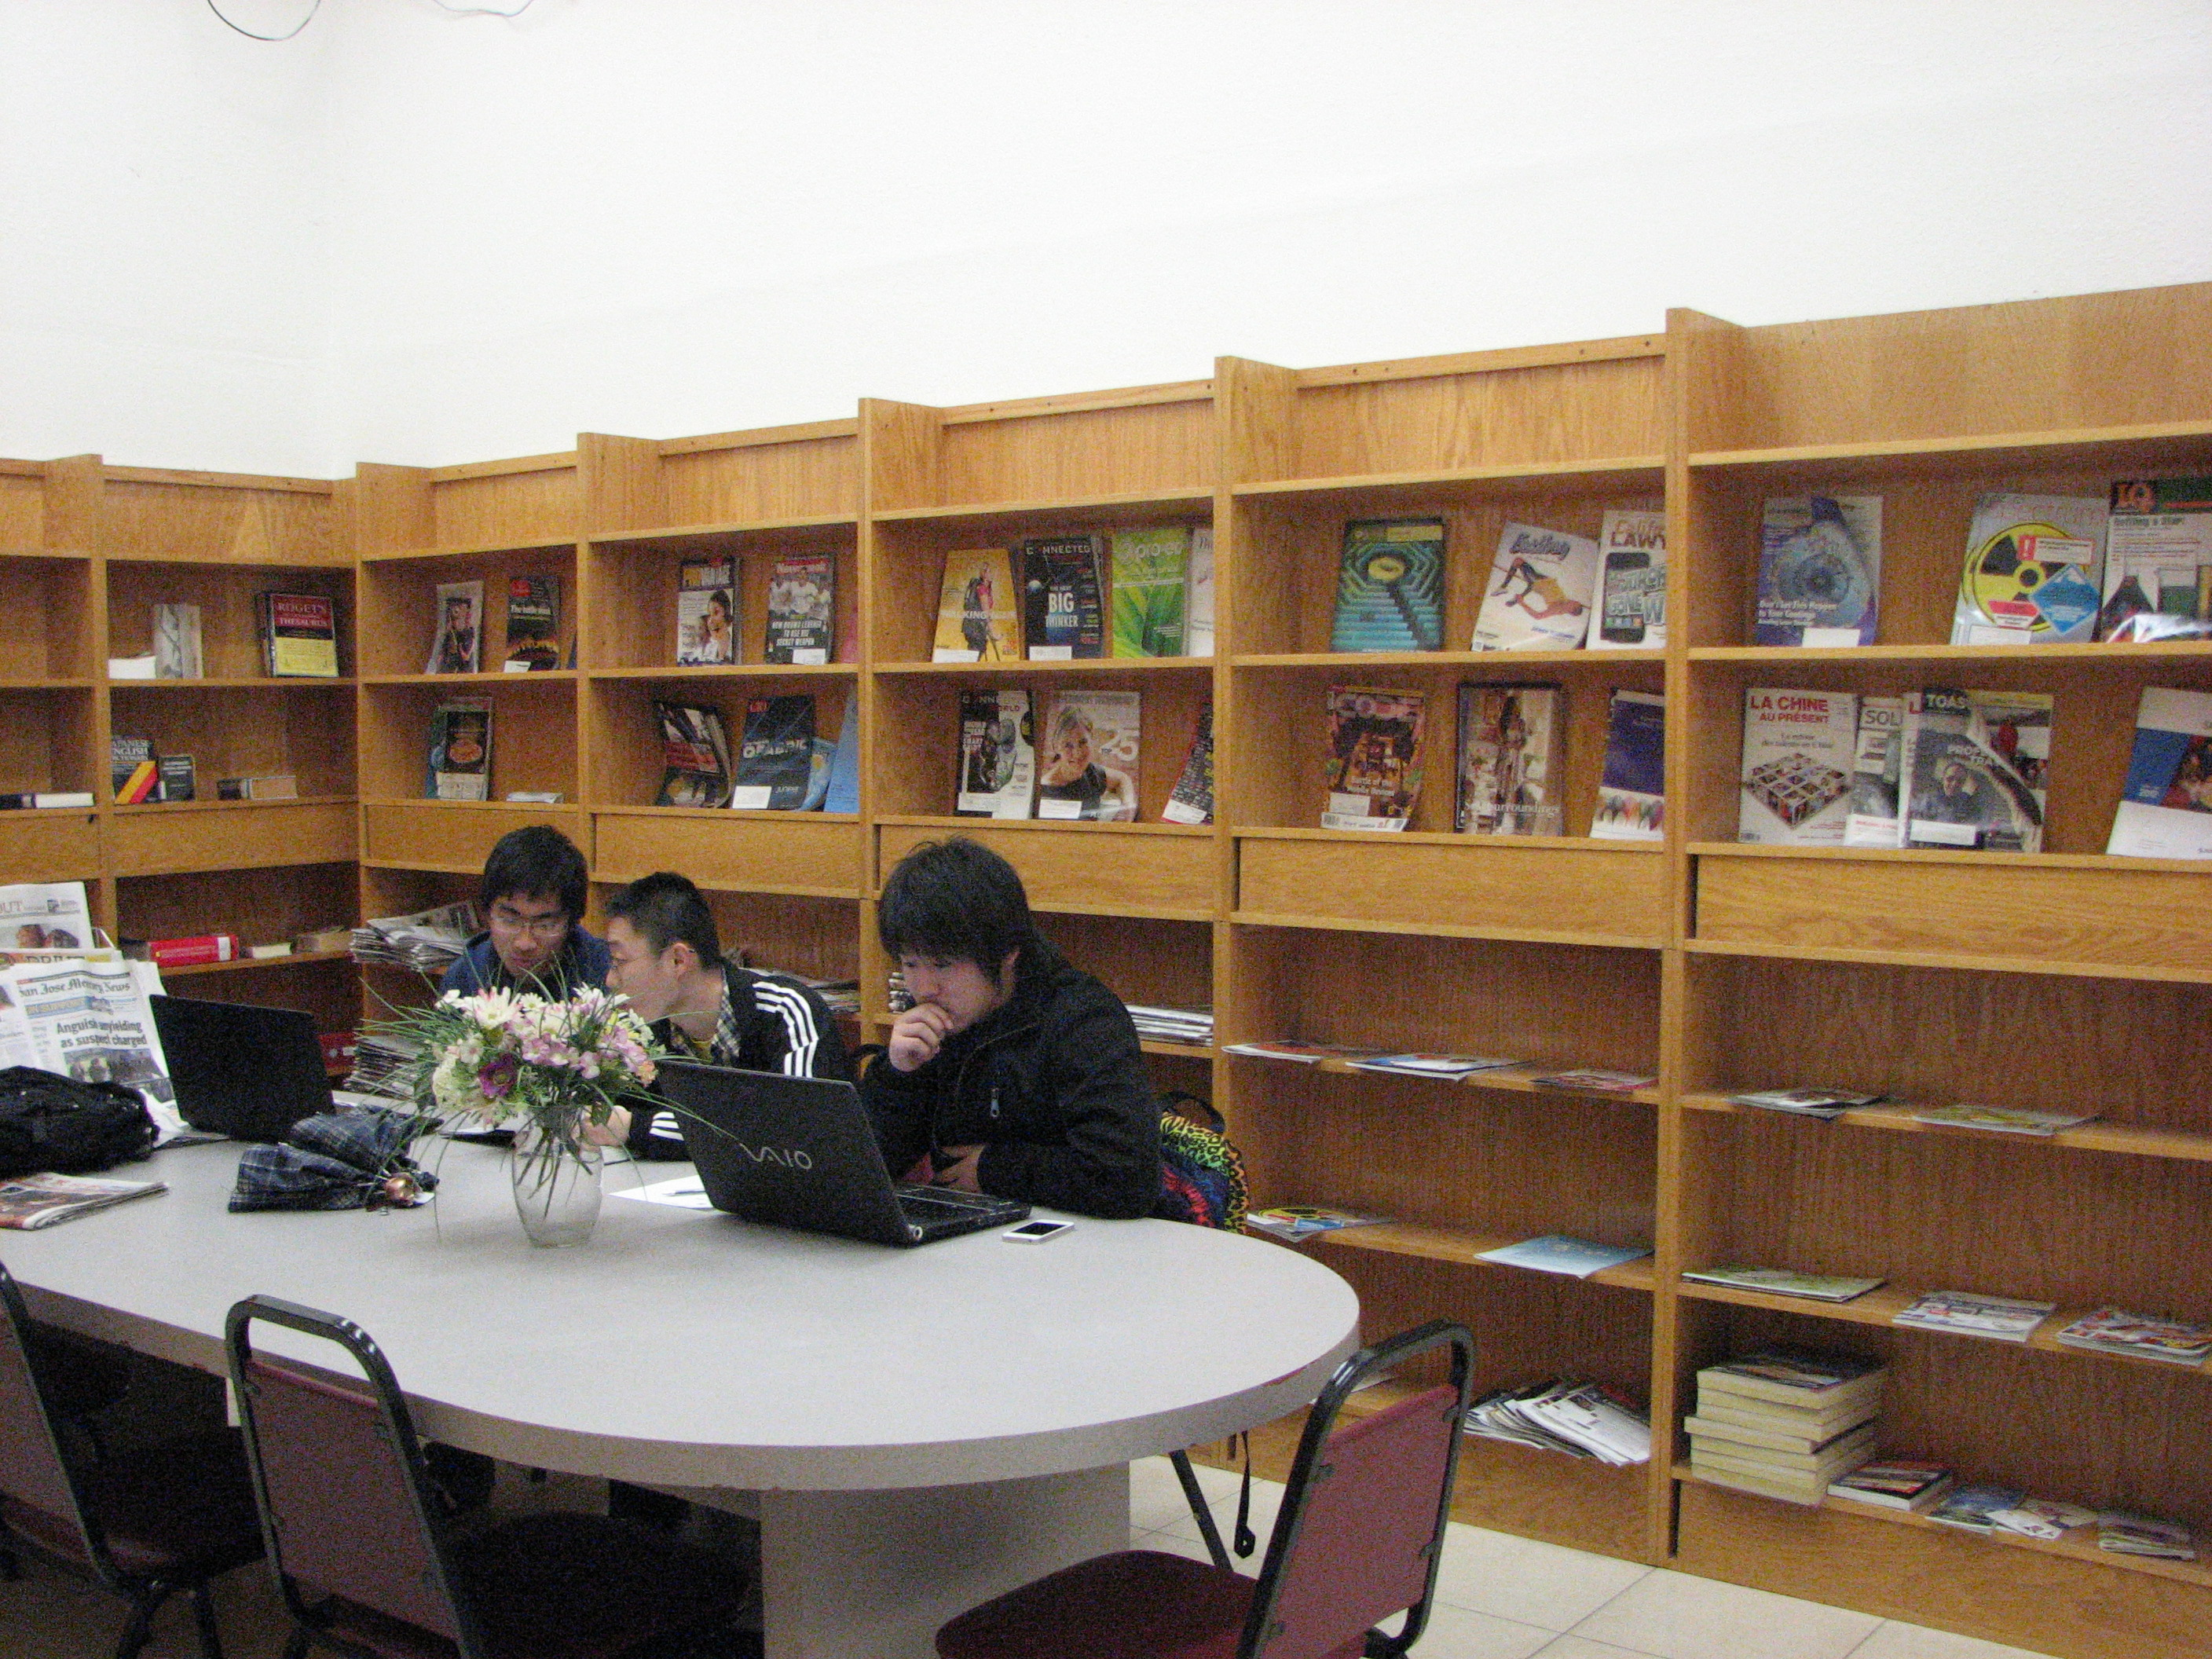 A group students are reading in the library